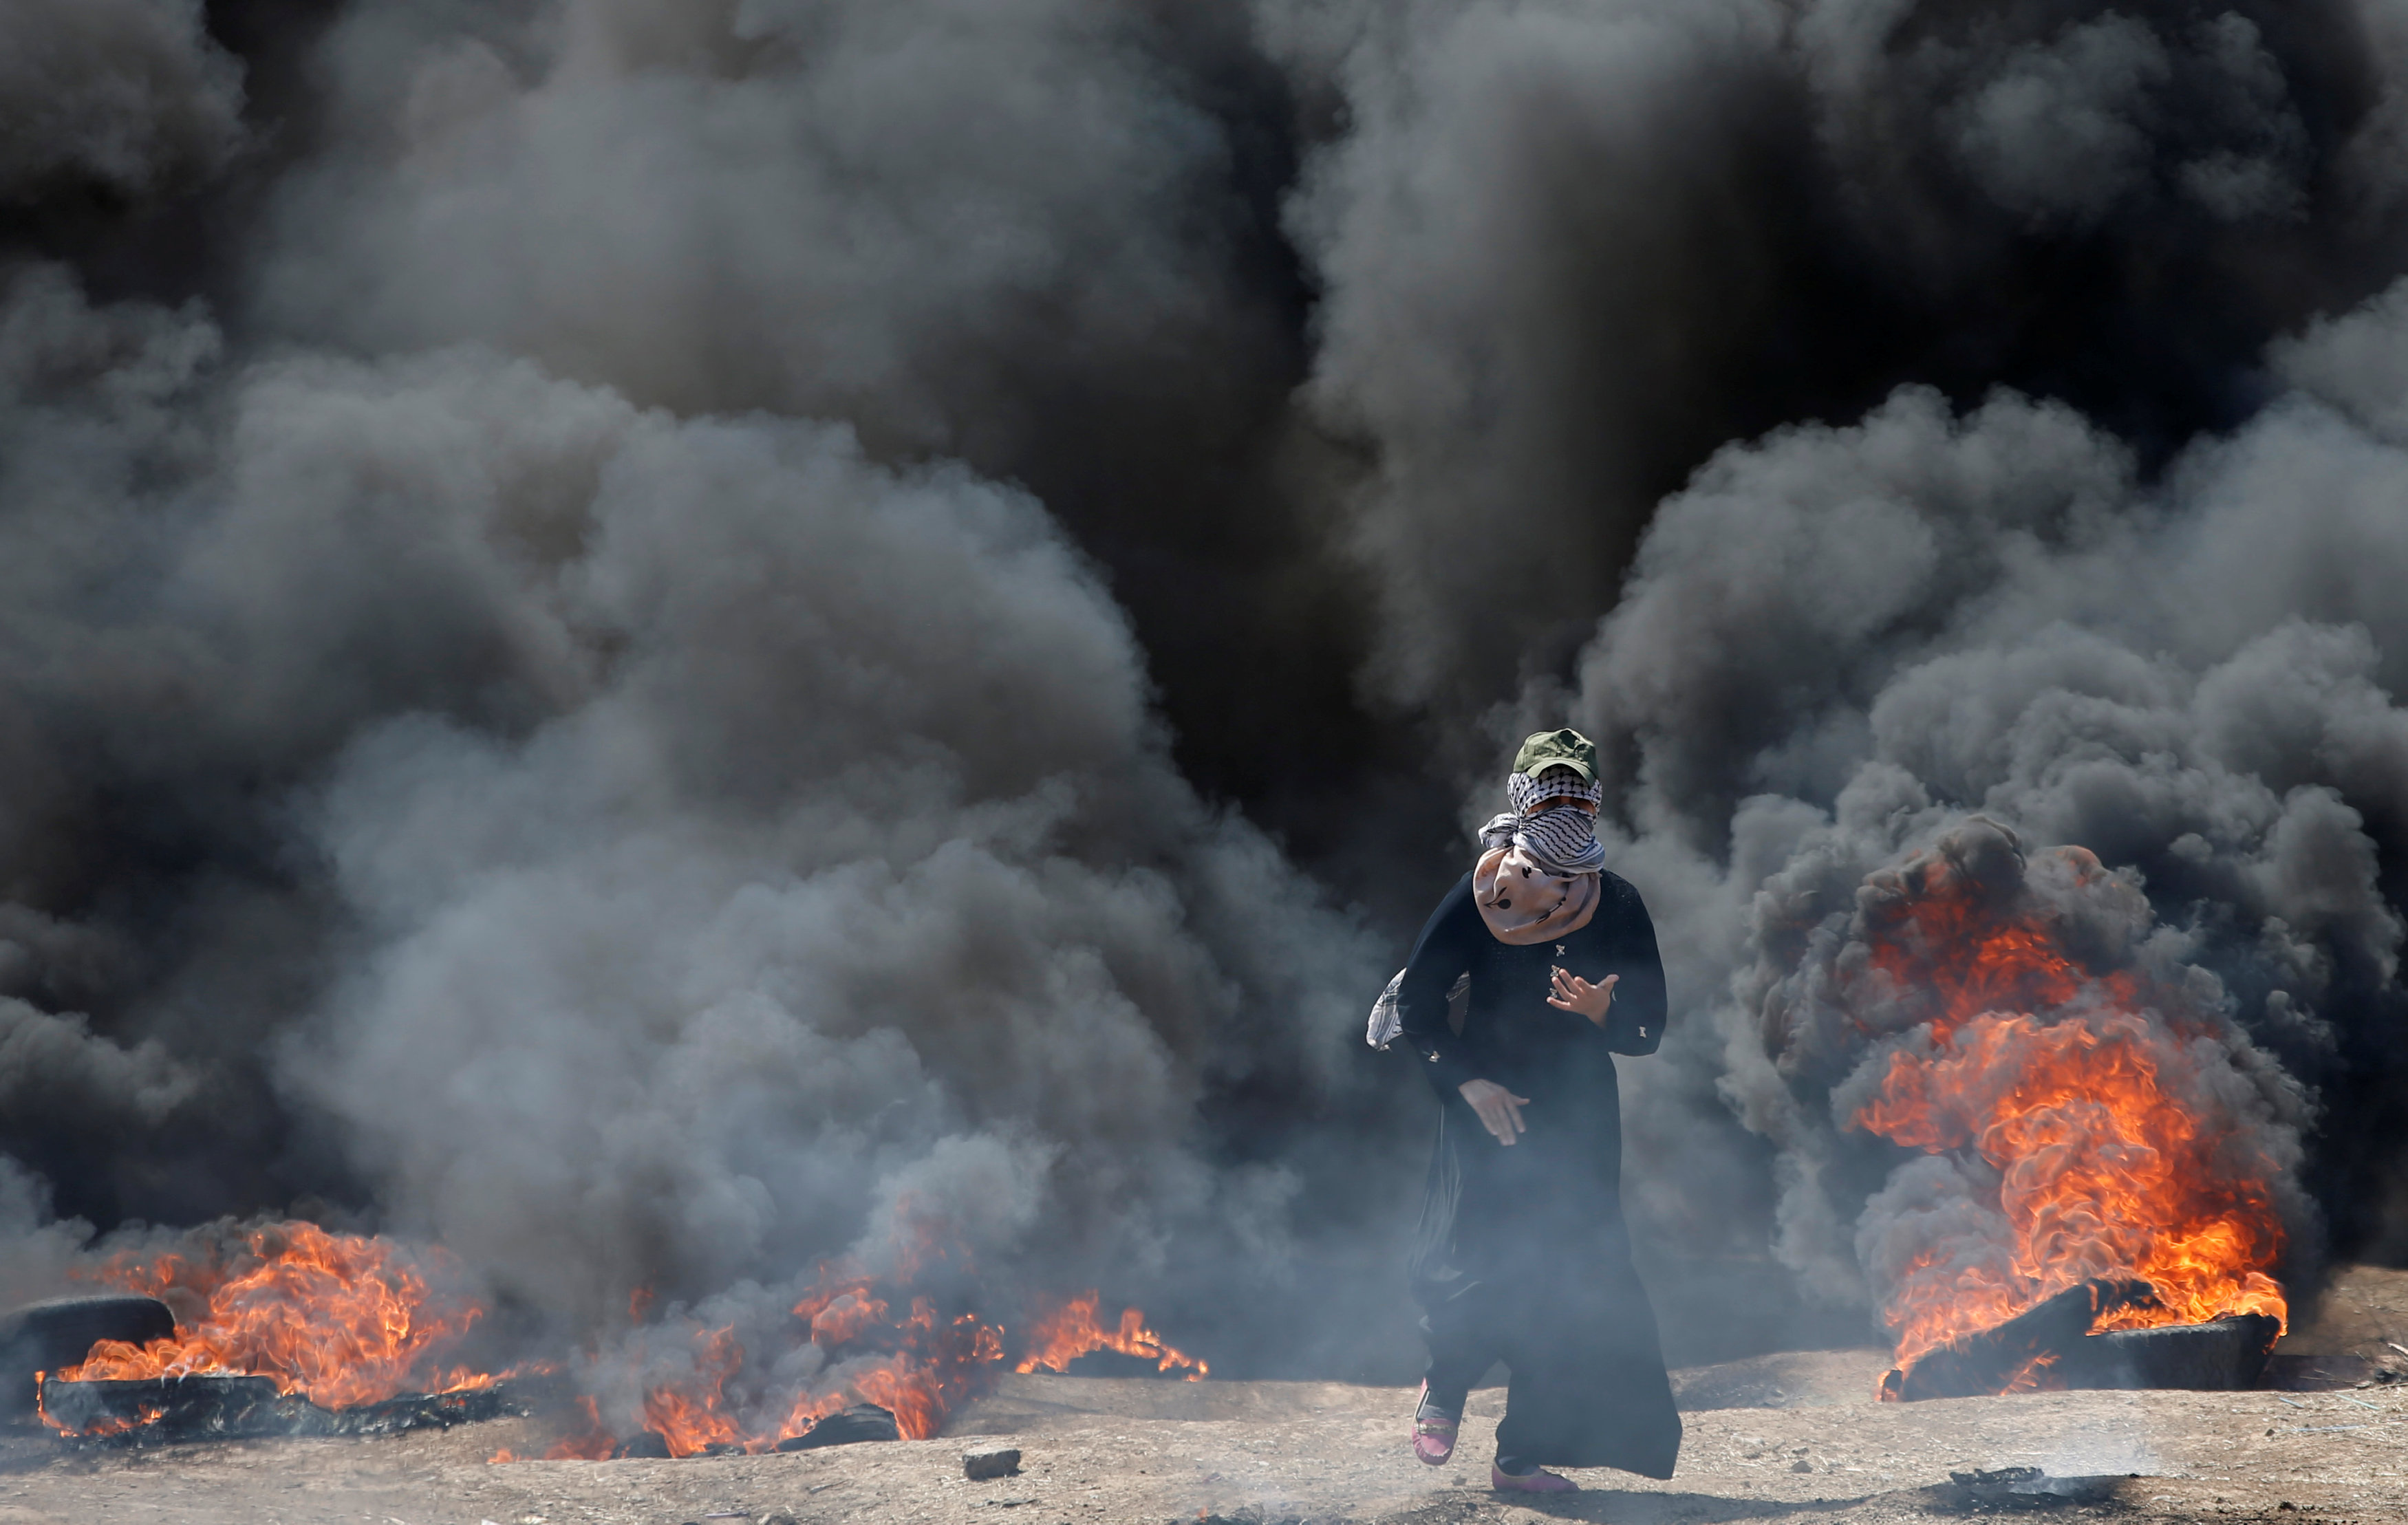 A female Palestinian demonstrator gestures during a protest against U.S. embassy move to Jerusalem and ahead of the 70th anniversary of Nakba, at the Israel-Gaza border, east of Gaza City May 14, 2018. REUTERS/Mohammed Salem